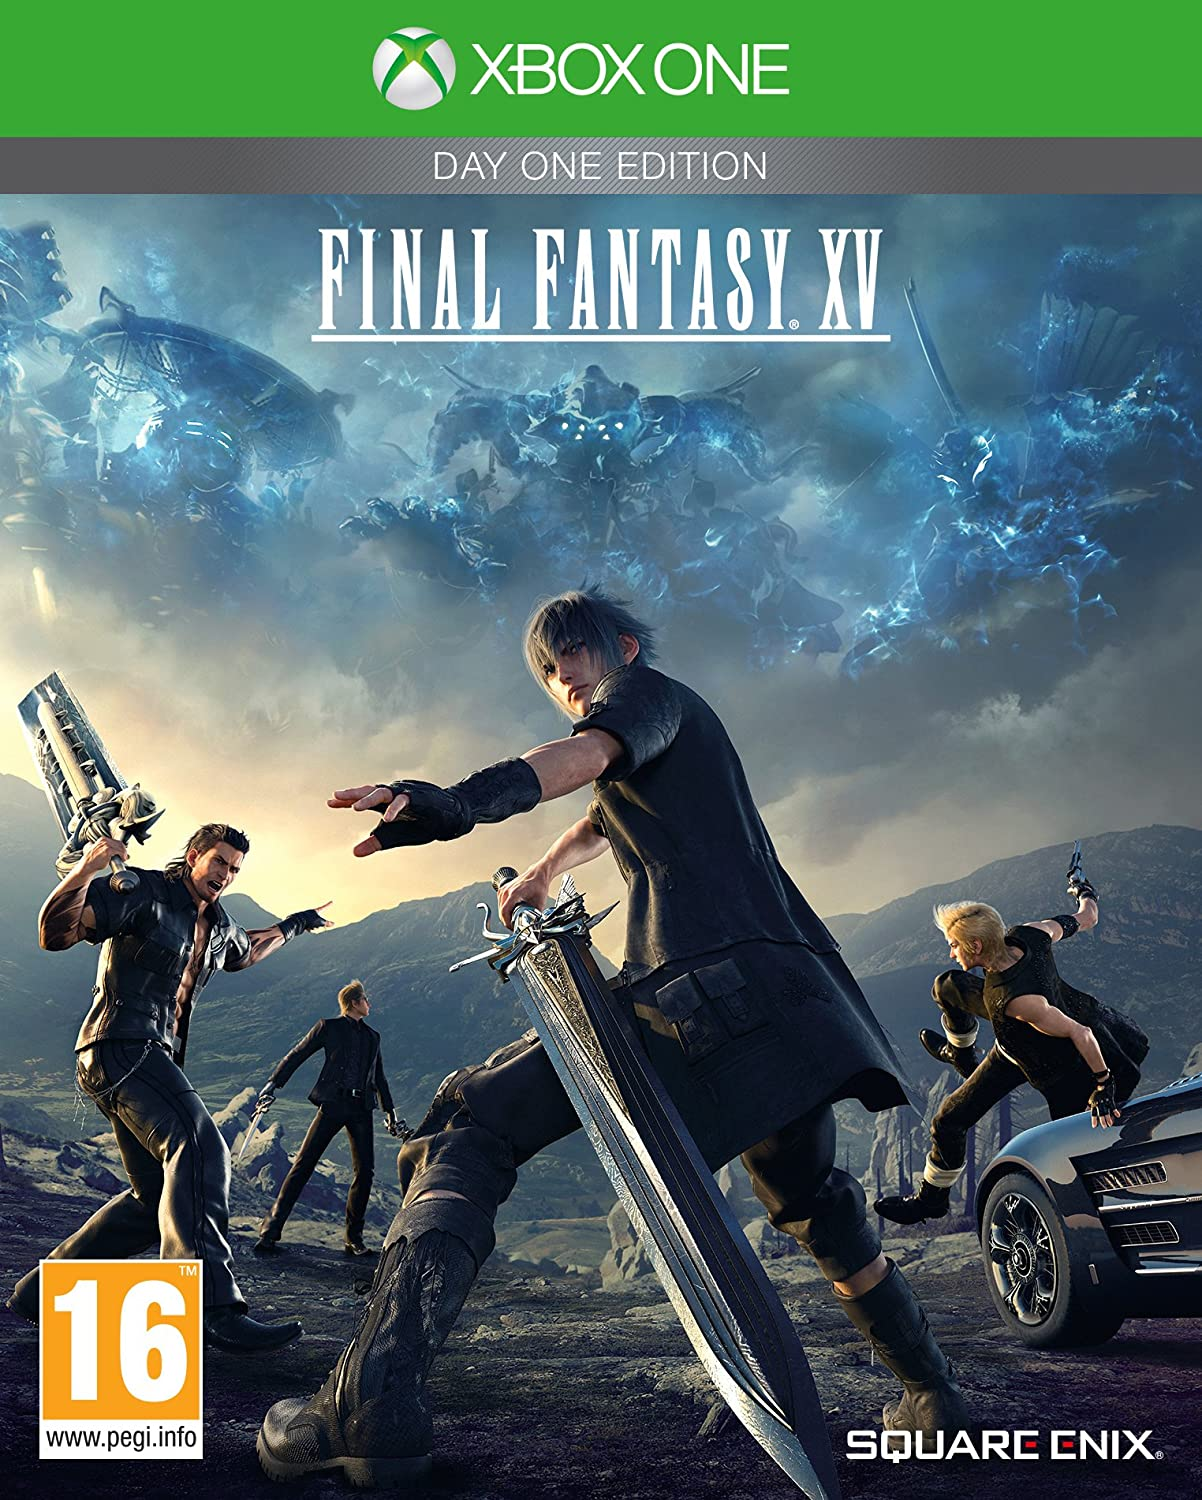 Amazoncom Final Fantasy XV Day One Edition Xbox One Video Games - 15 fantasy landscapes entirely made from food